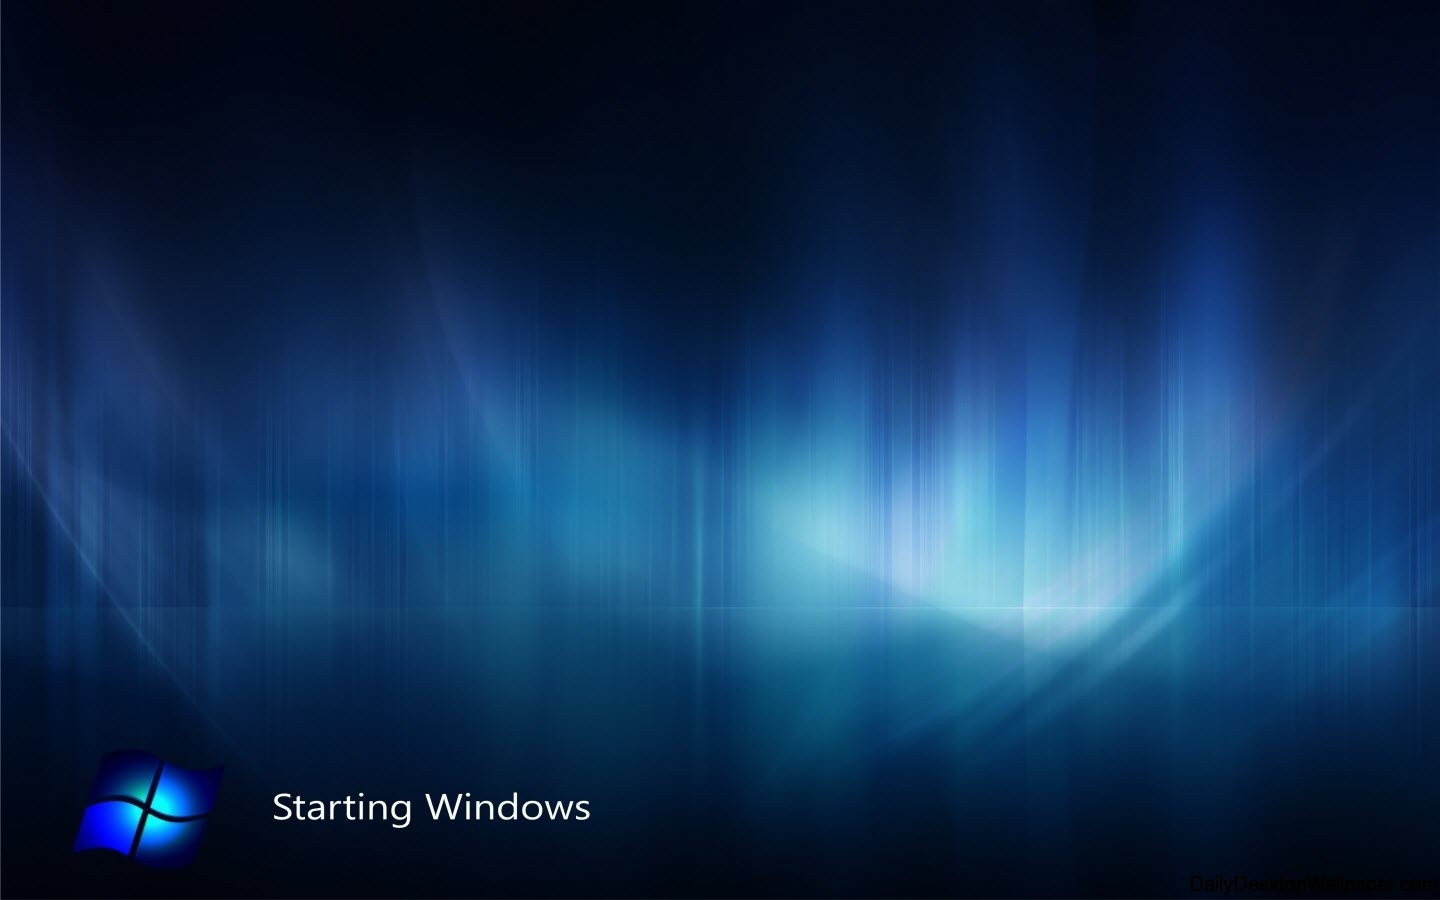 Dark stripey windows  wallpaper